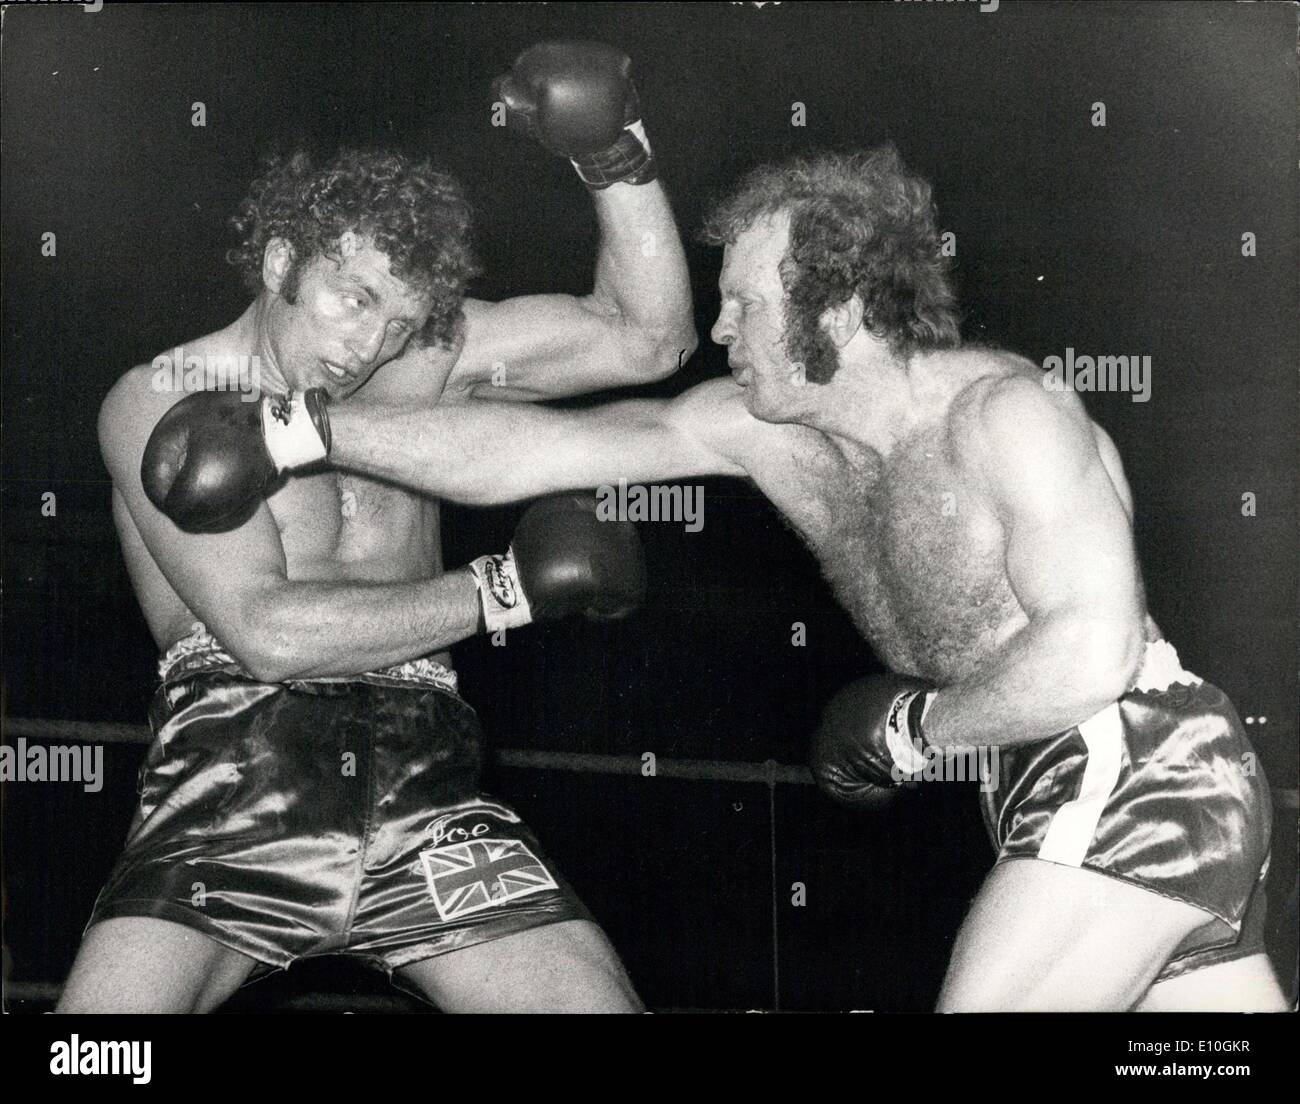 Jan. 17, 1973 - Joe Bugner retains European title.: Joe Bugner retained his European heavyweight title last night when he beat Rudi Lubbers of Holland on points, at the Royal Albert Hall, London. Photo shows Joe Bugner (left) ecaden a right from Rudi Lubbers, during their fight last night. - Stock Image